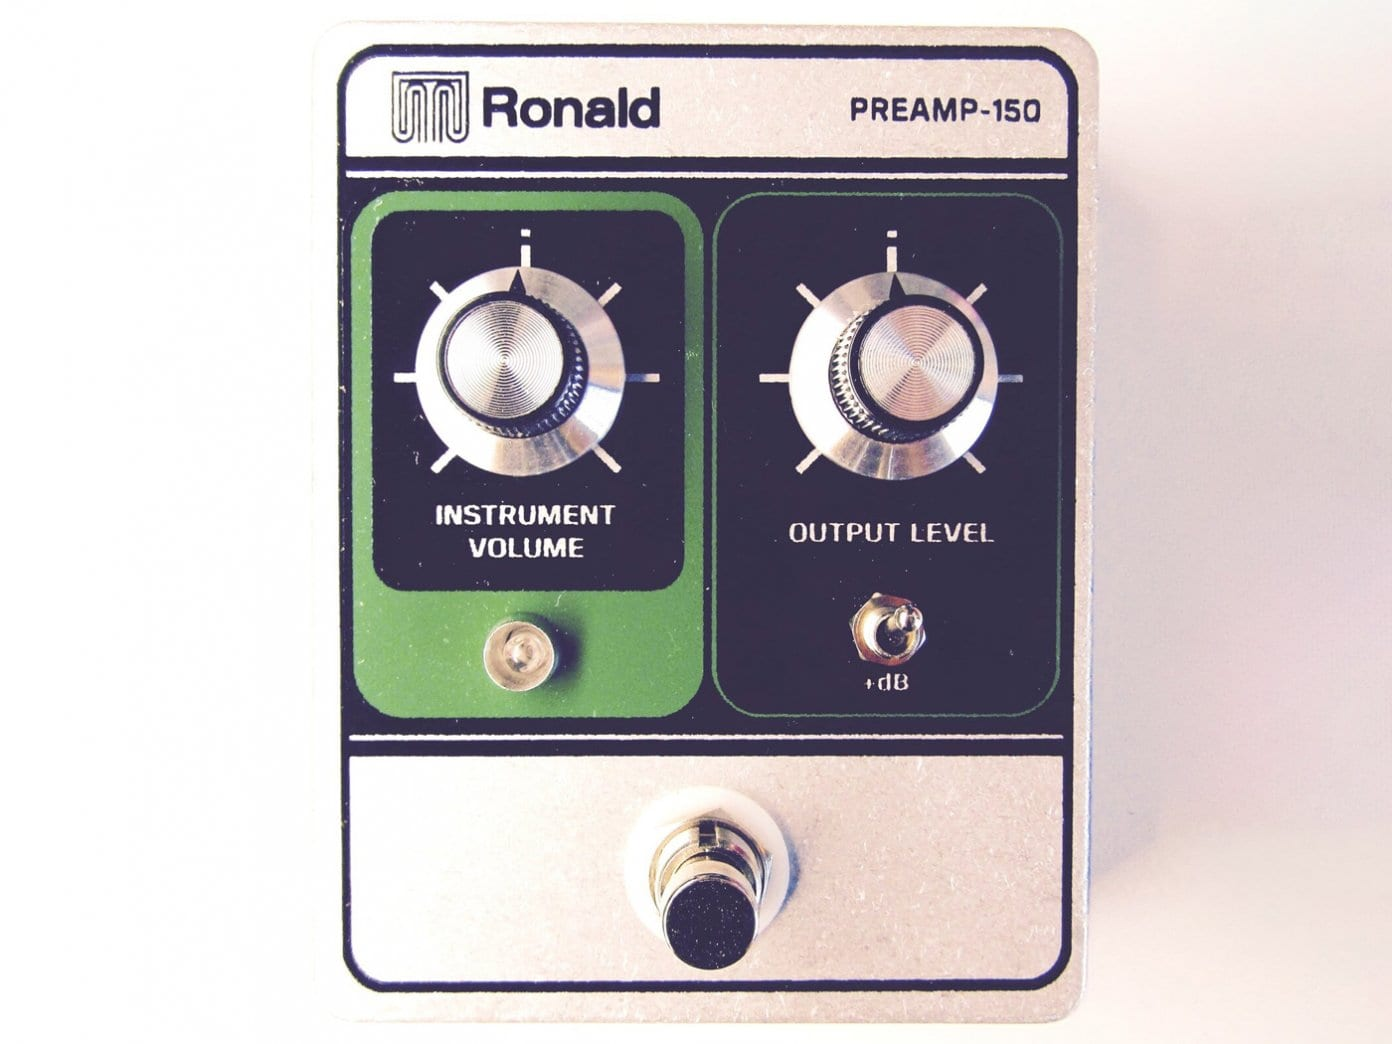 Mile End Effects recreates the Roland Space Echo RE-150 preamp with new Ronald PreAmp 150